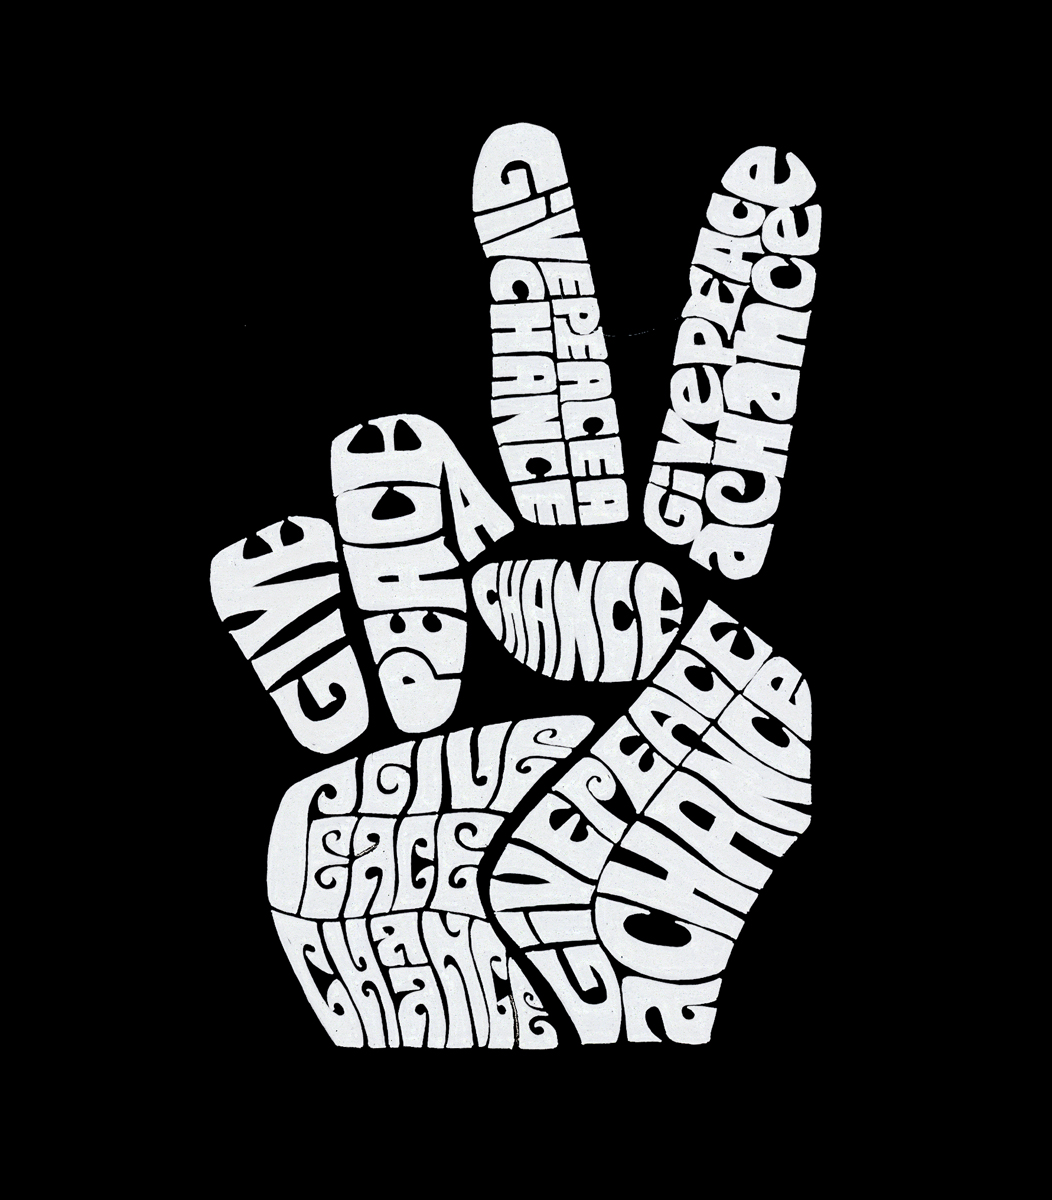 After Manchester, give peace a chance